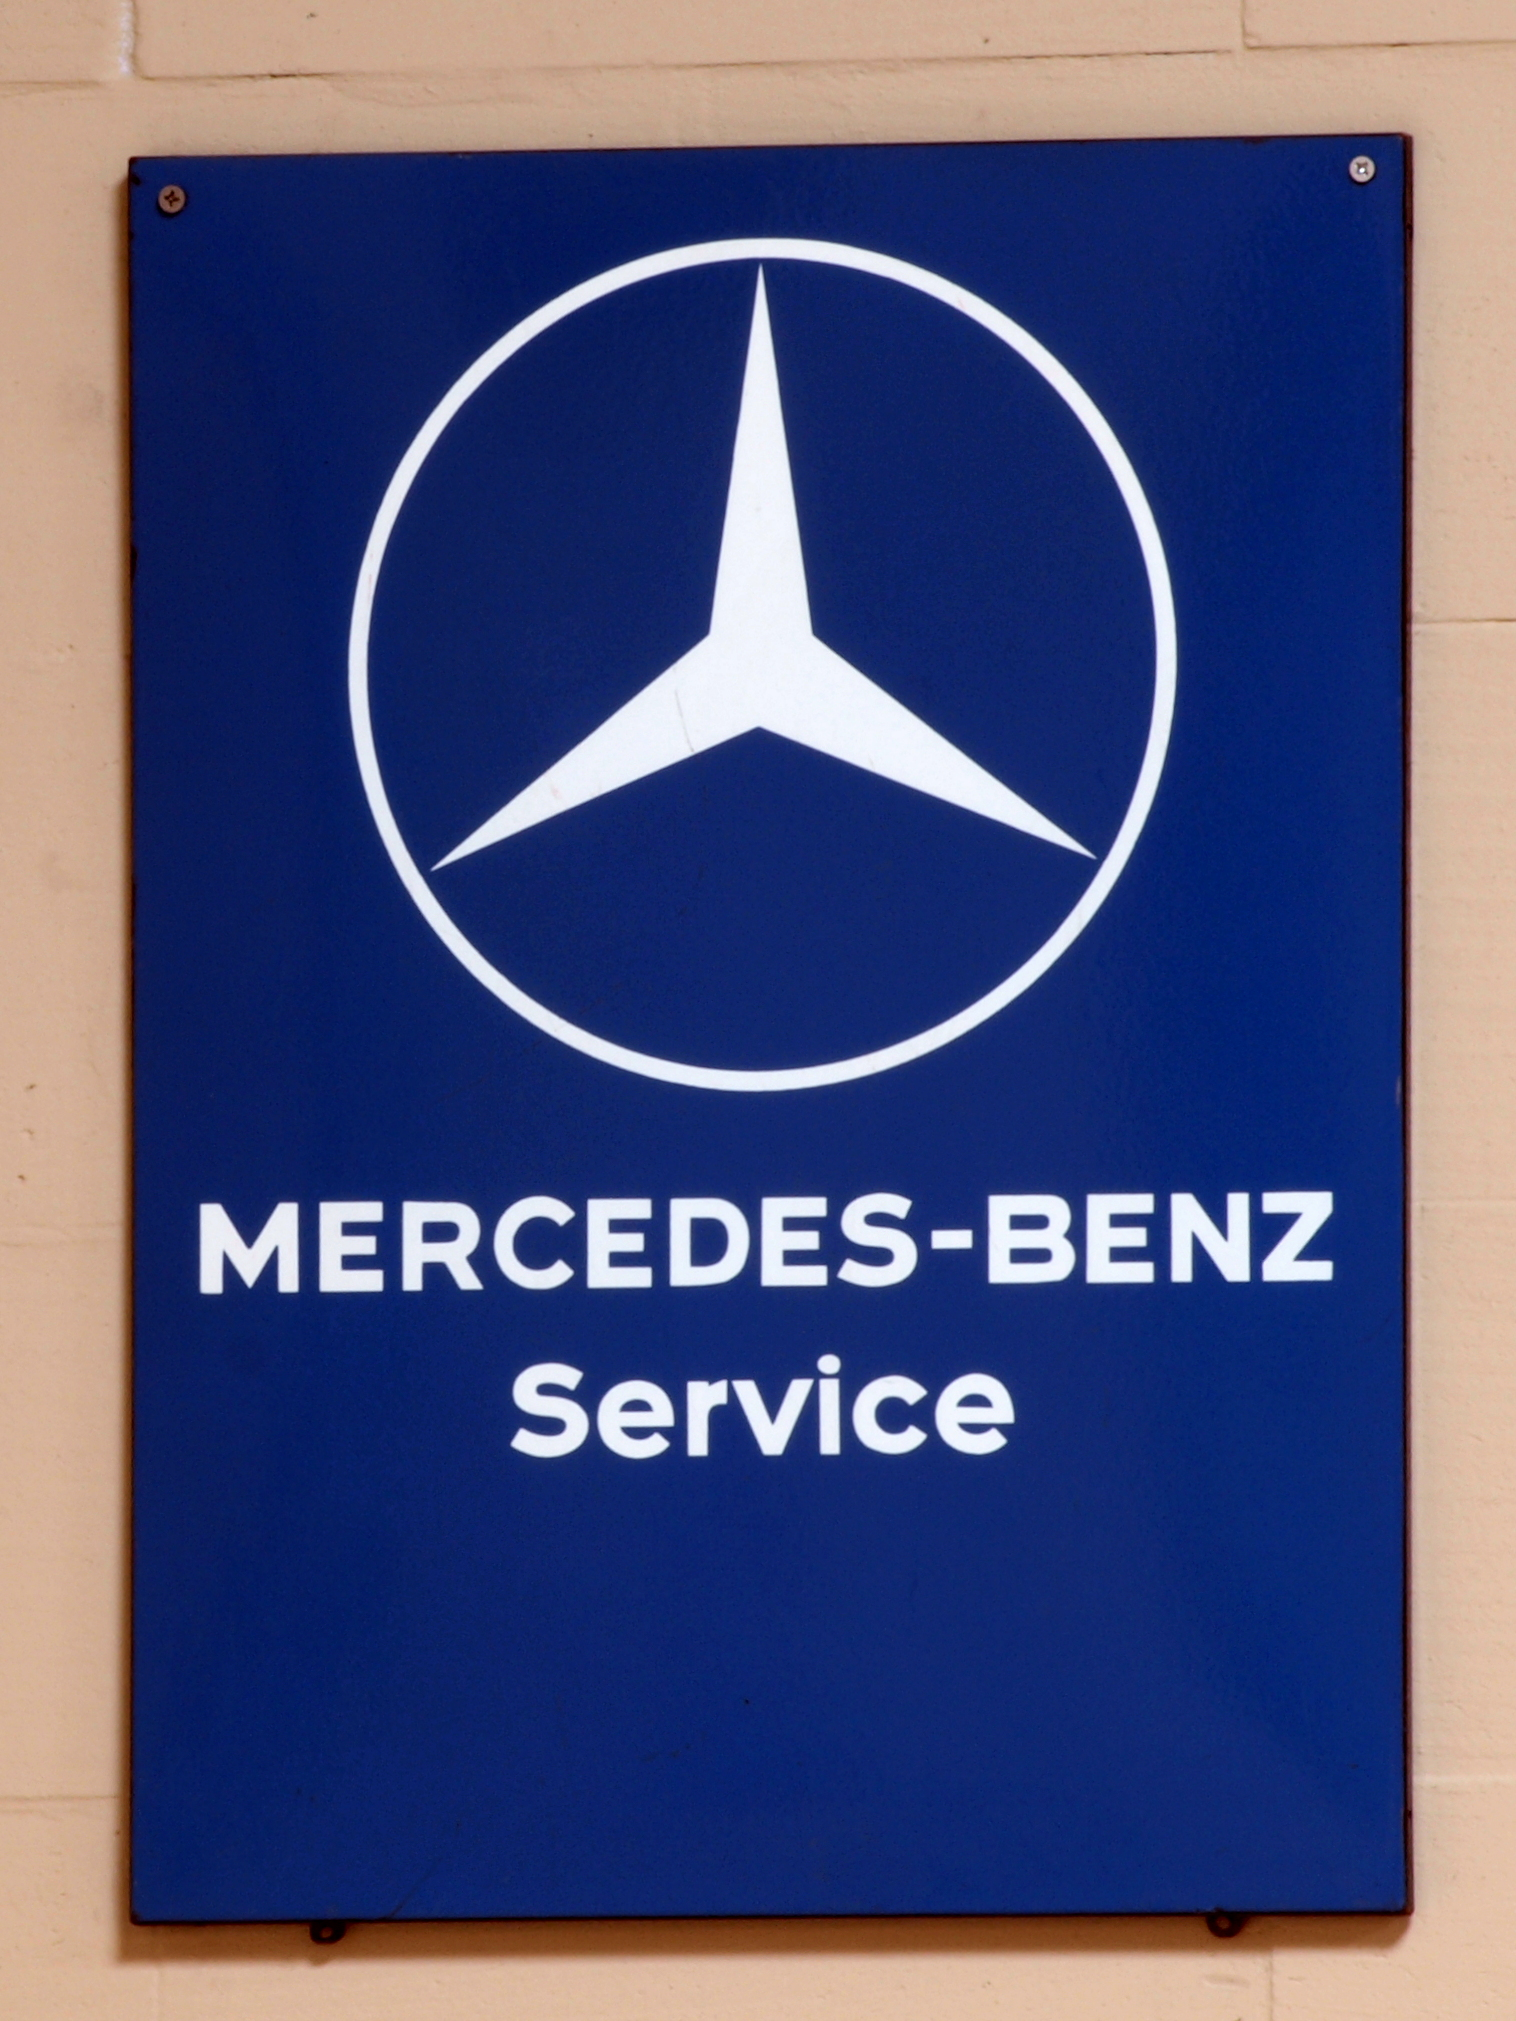 filemercedes benz service enamel advert sign   den hartog ford museum pic jpg